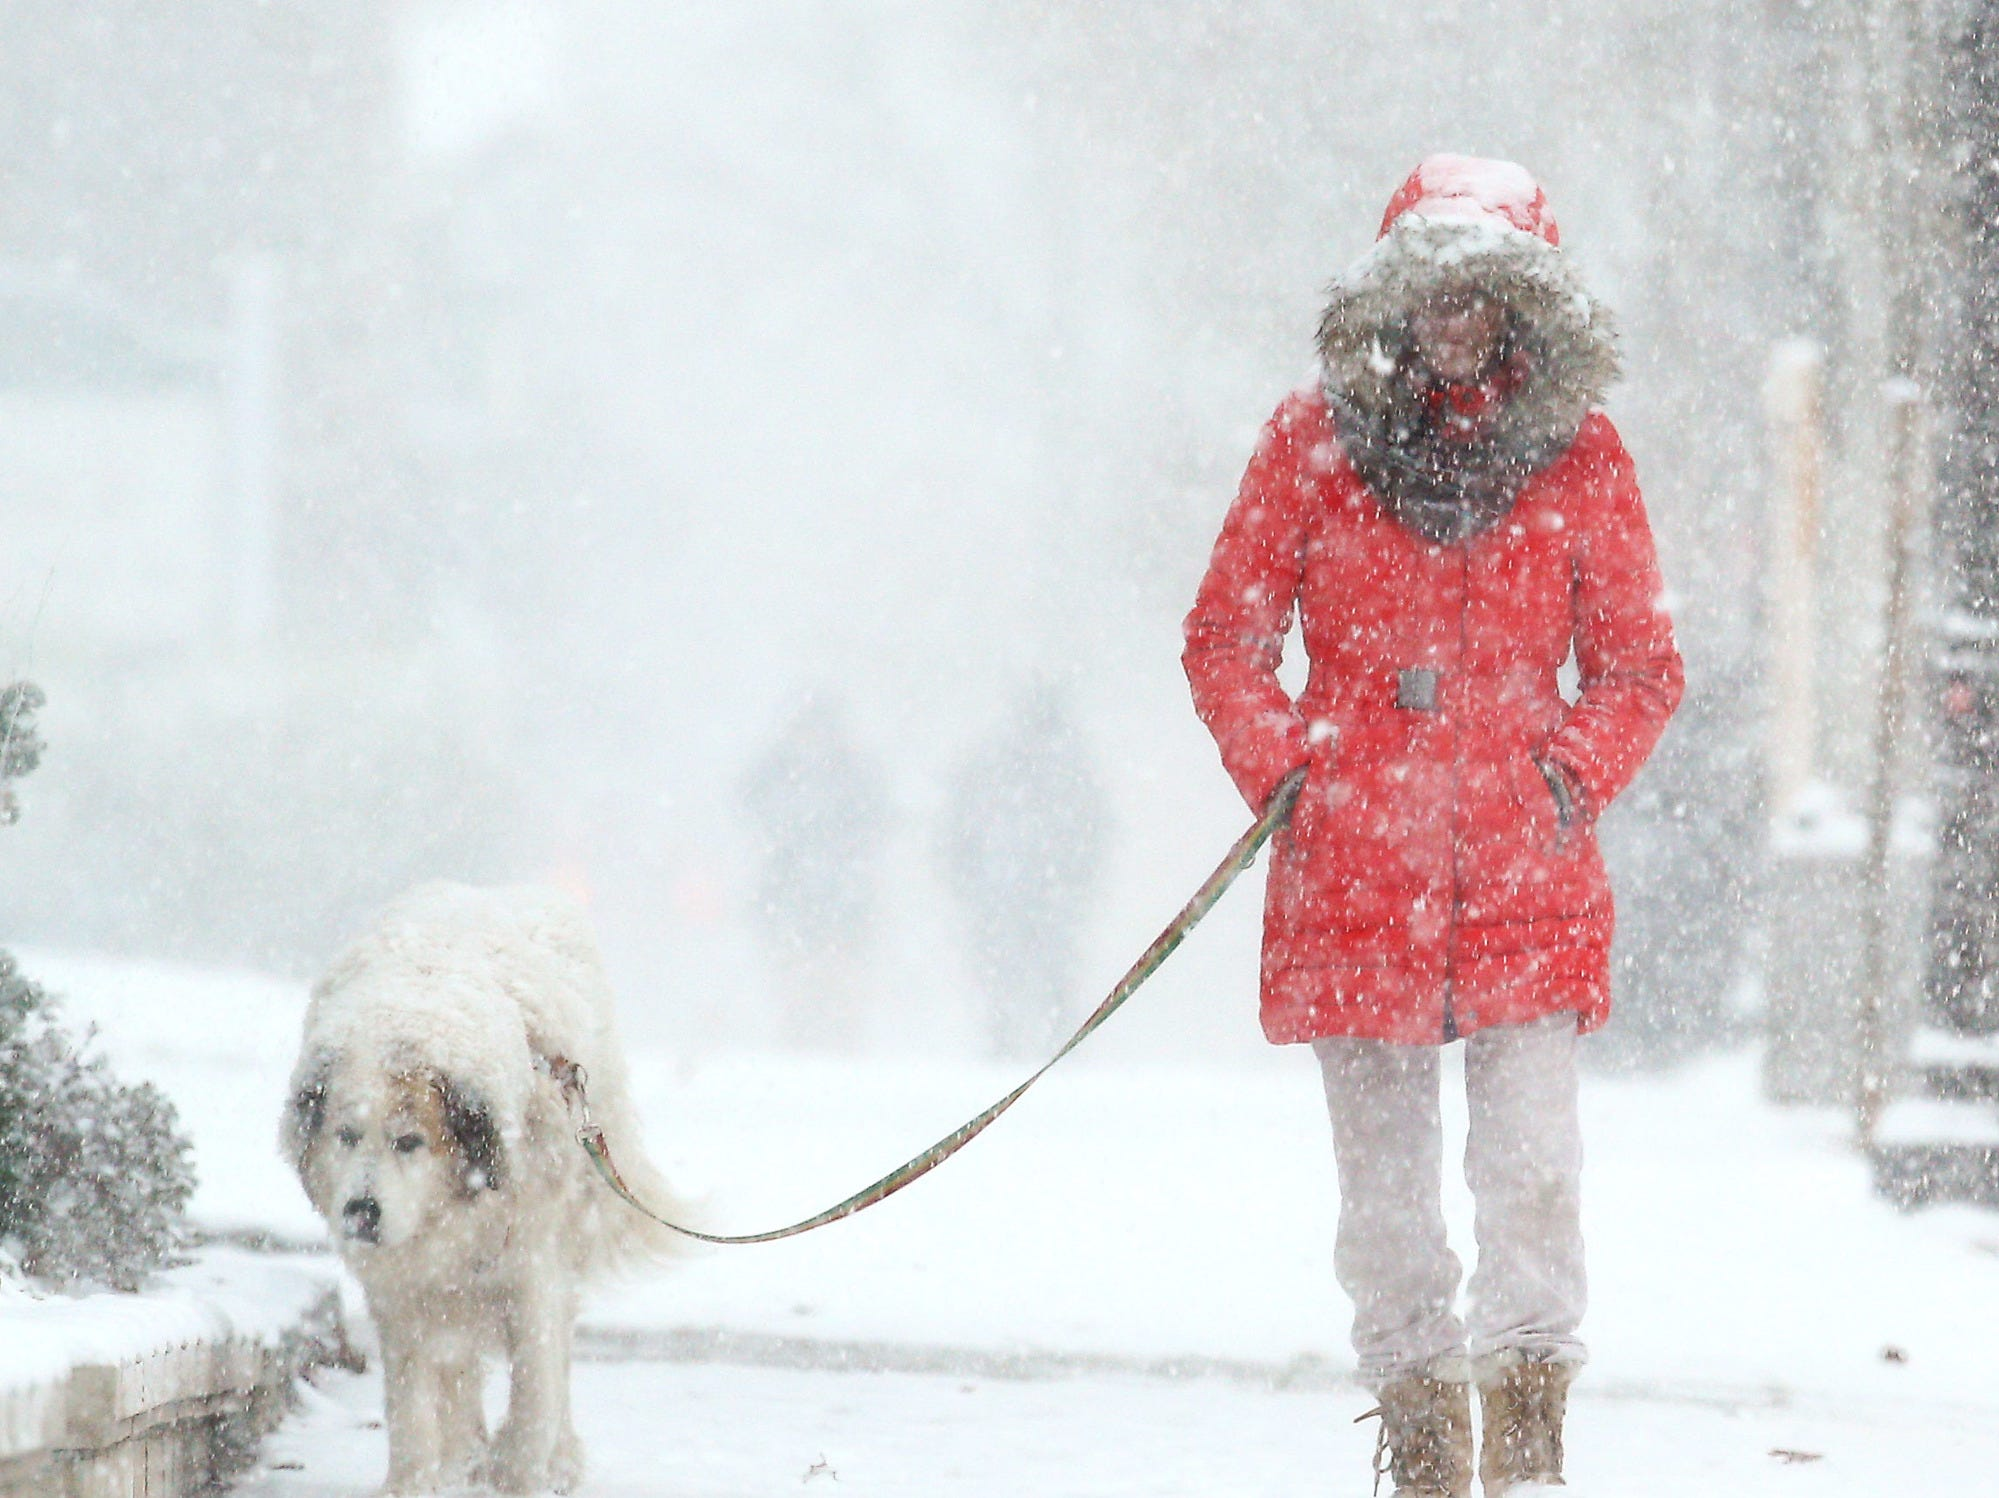 Amy Johnson and Stormy of Morristown walk down South Street  as snow becomes heavier, pedestrians navigating a predicted nor'easter, scheduled to dump over half a foot of snow and freezing rain on the area.  November 15, 2018, Morristown, NJ